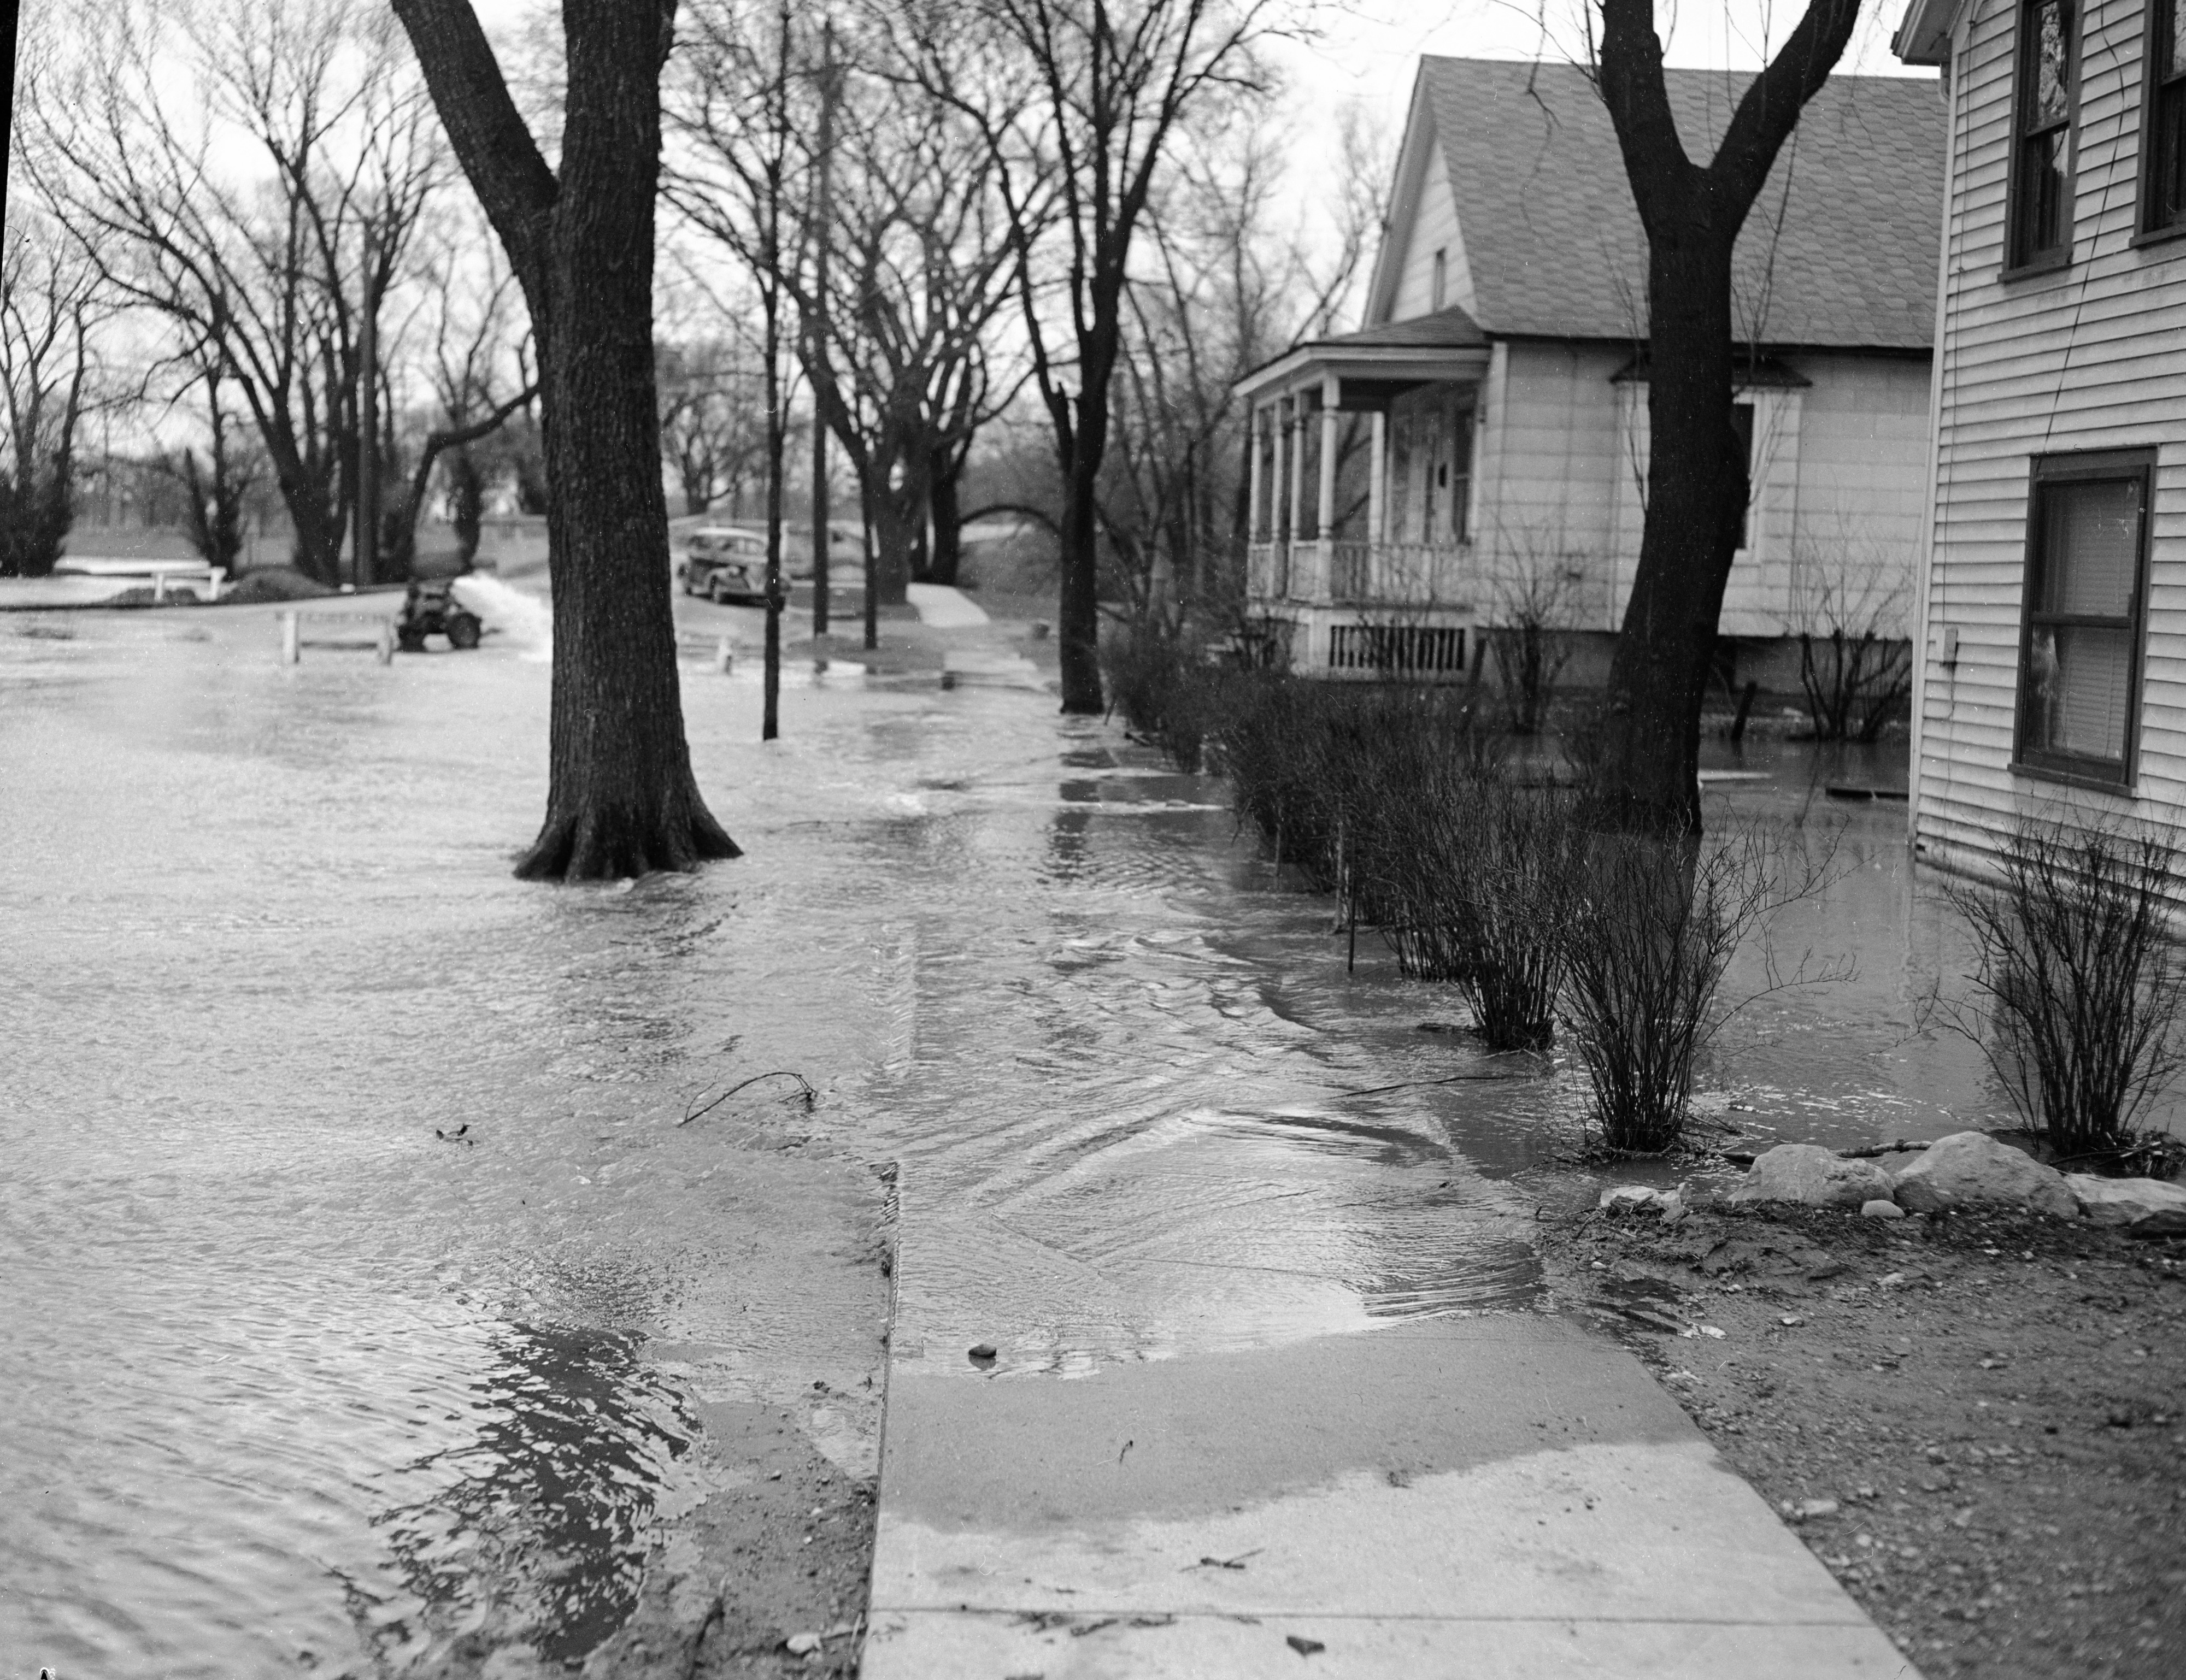 Streets In Wall Street Neighborhood Flooded By Overflowing Huron River, April 1950 image